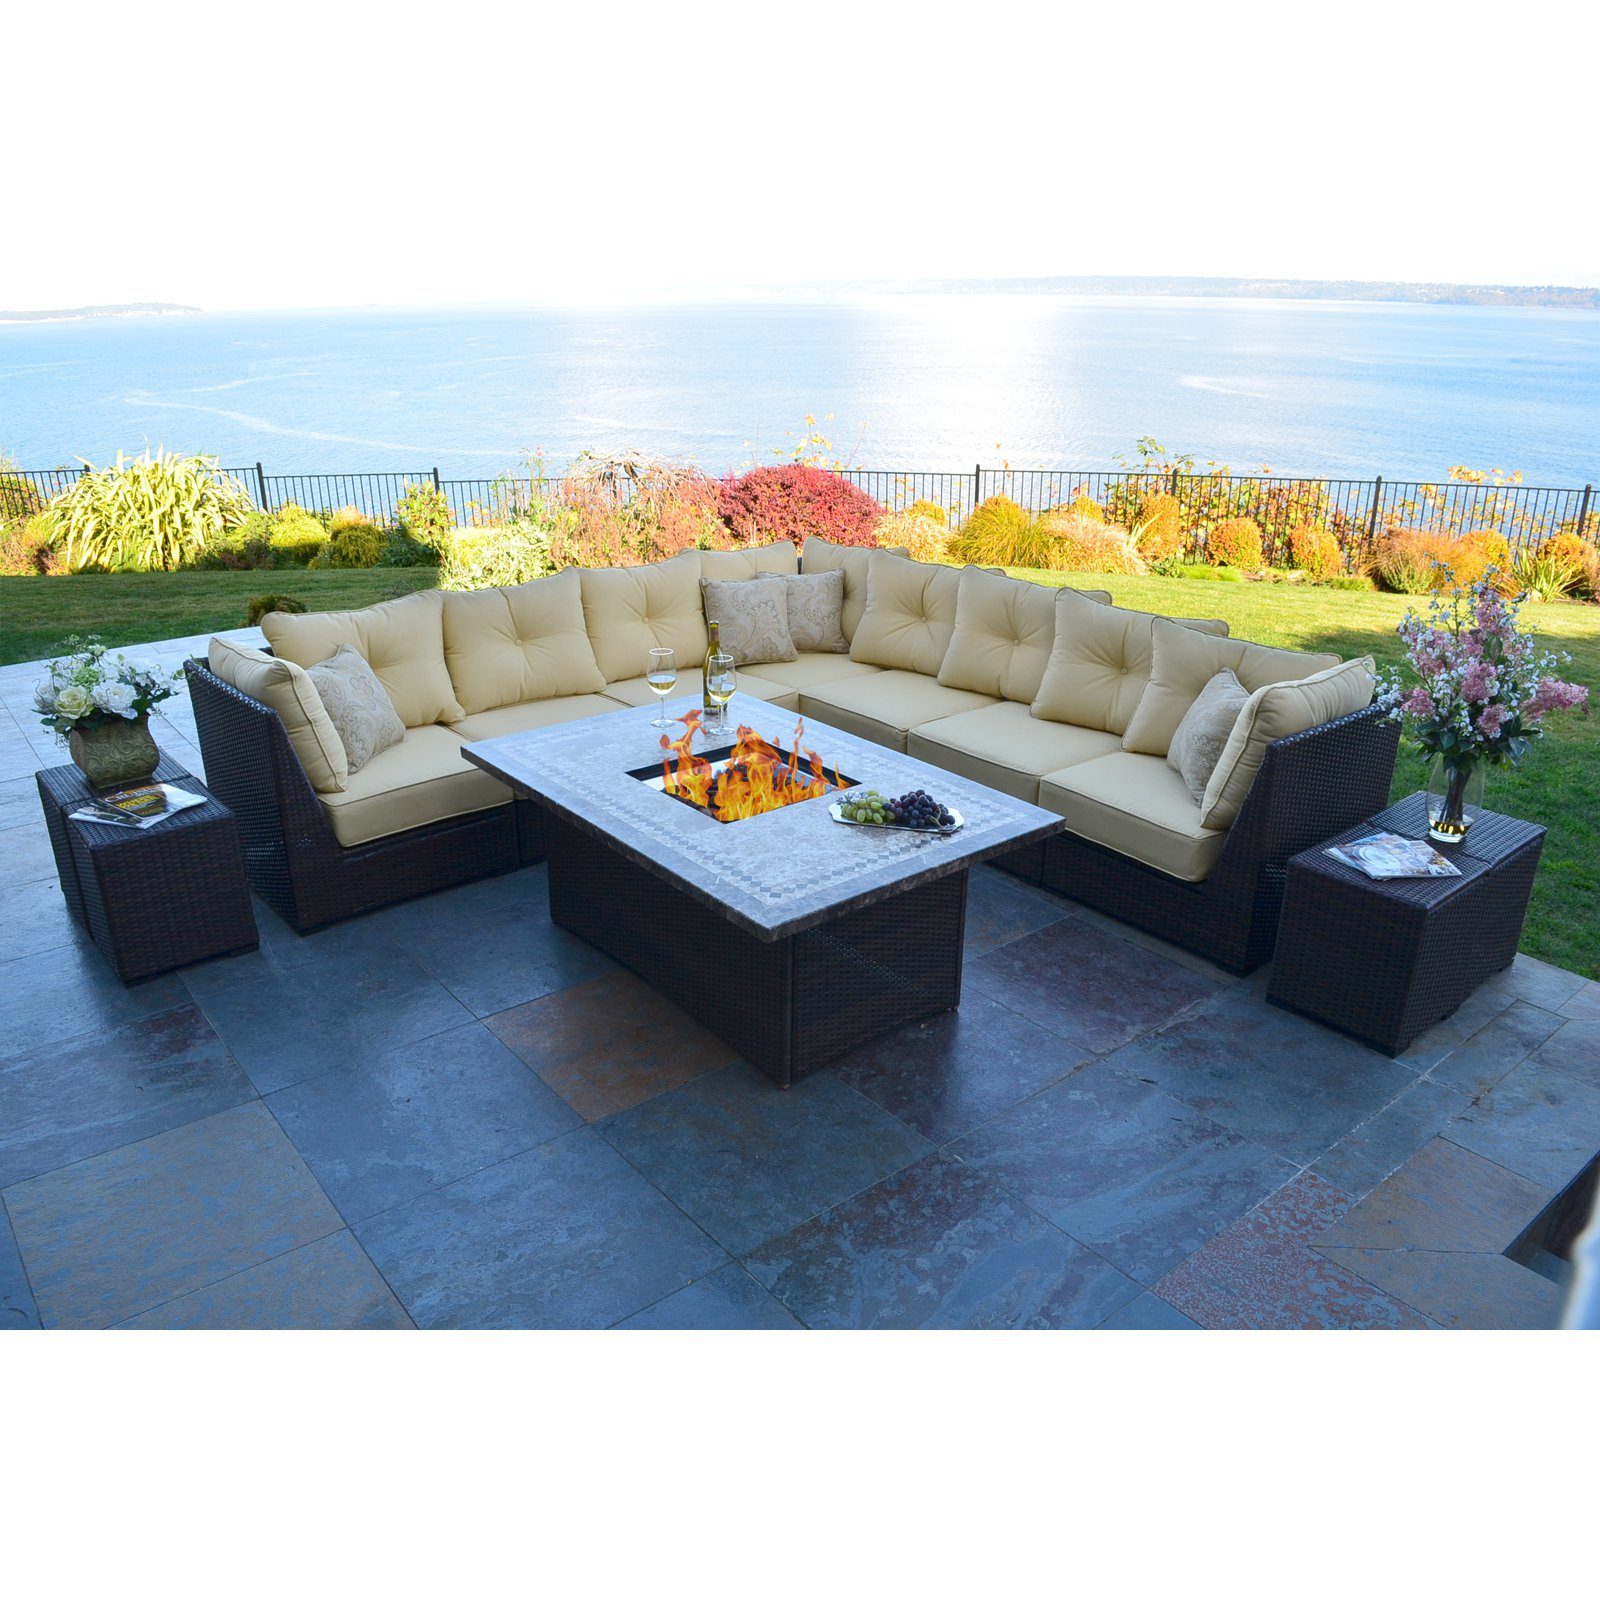 south beach allweather wicker sectional fire pit chat set walmartcom